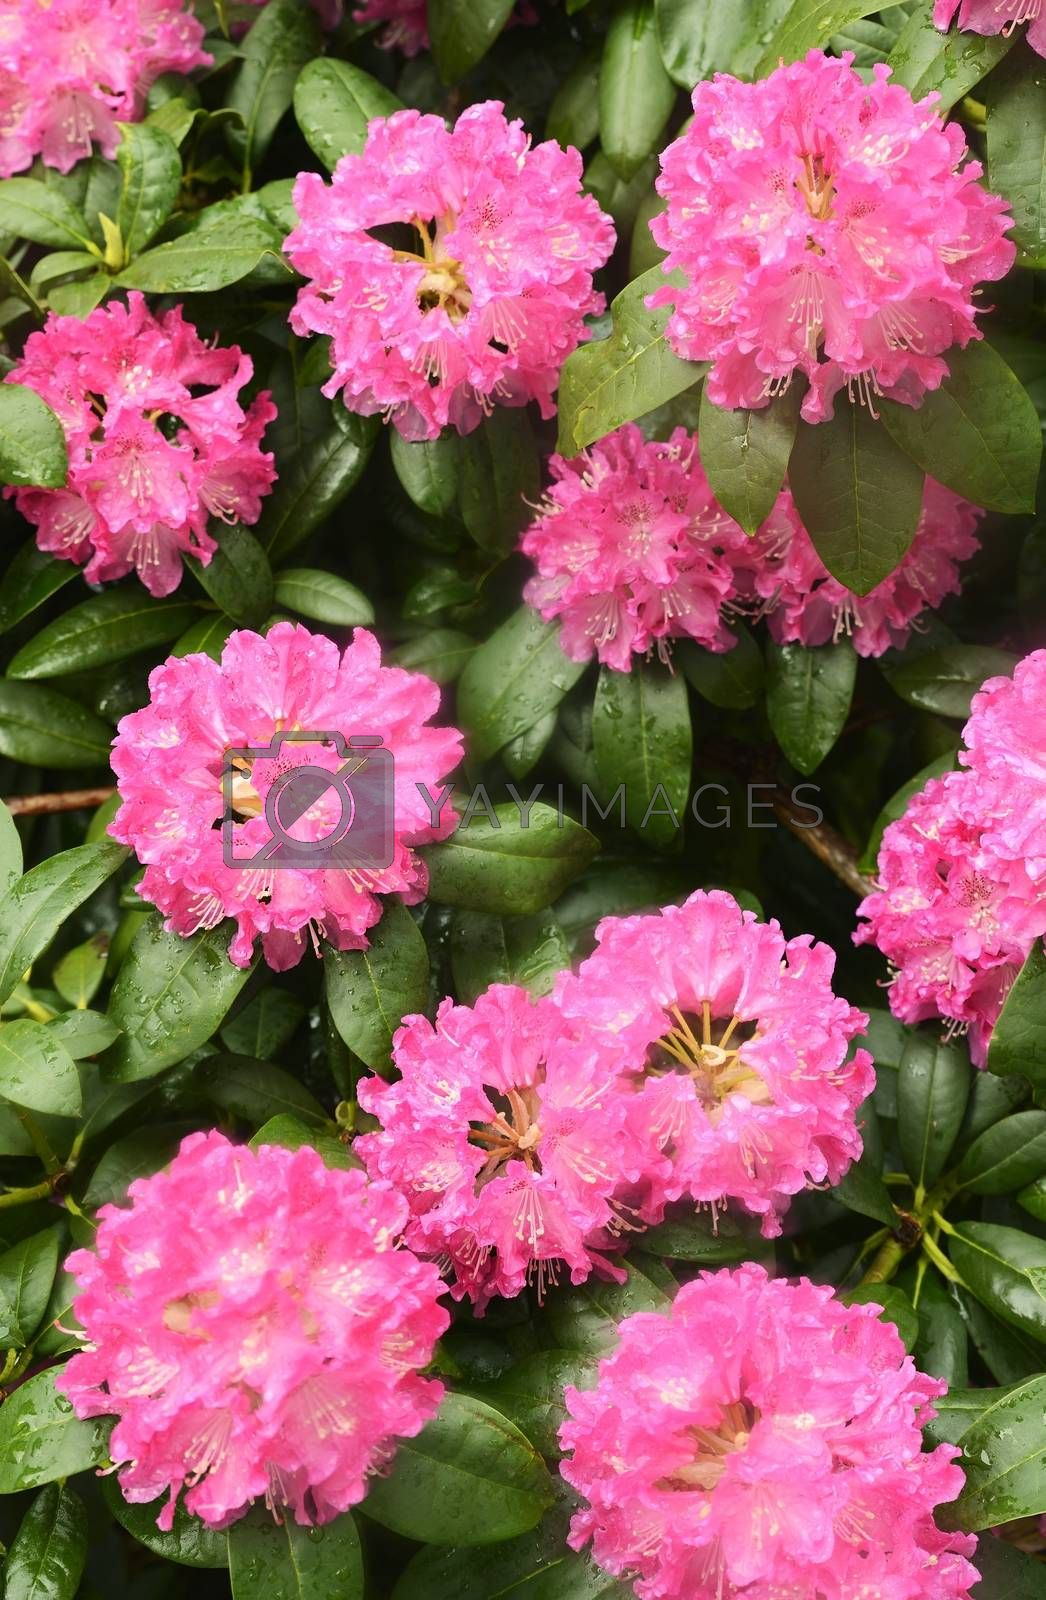 Closeup of Pink Rhododendron flower